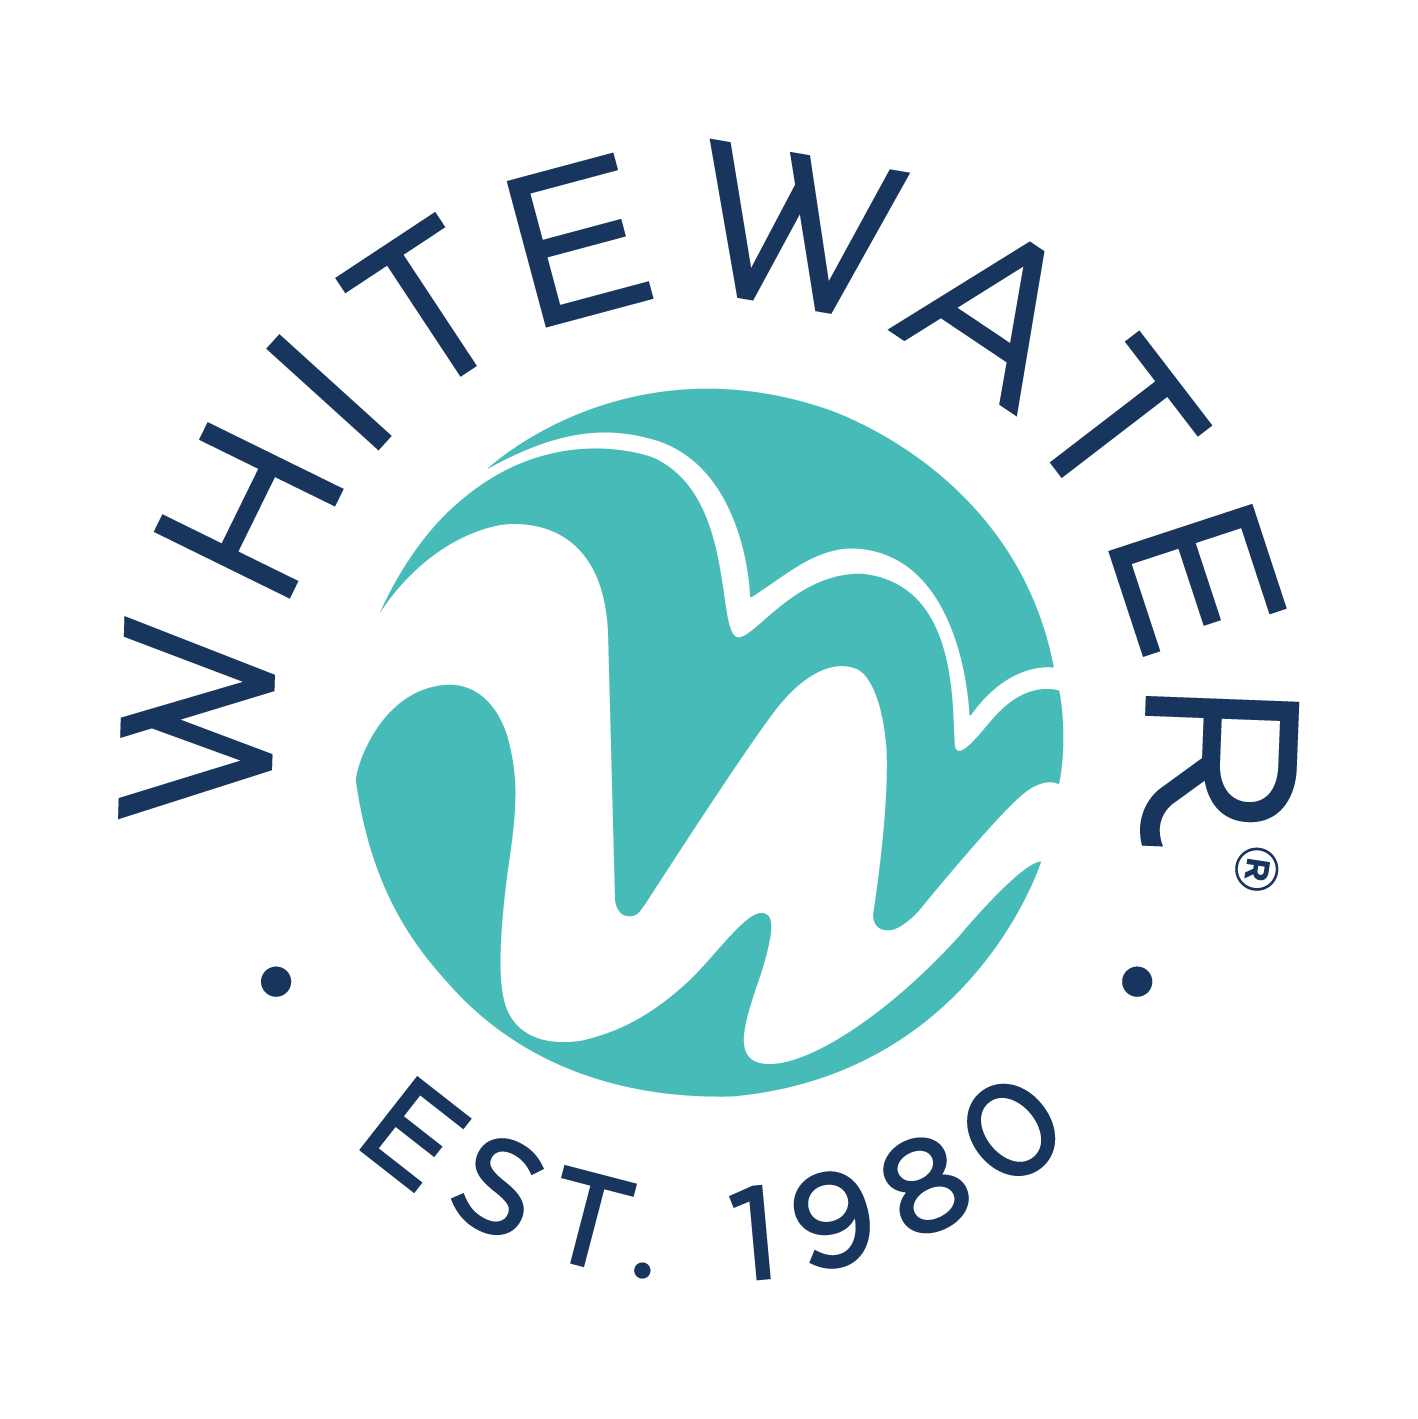 WhiteWater West